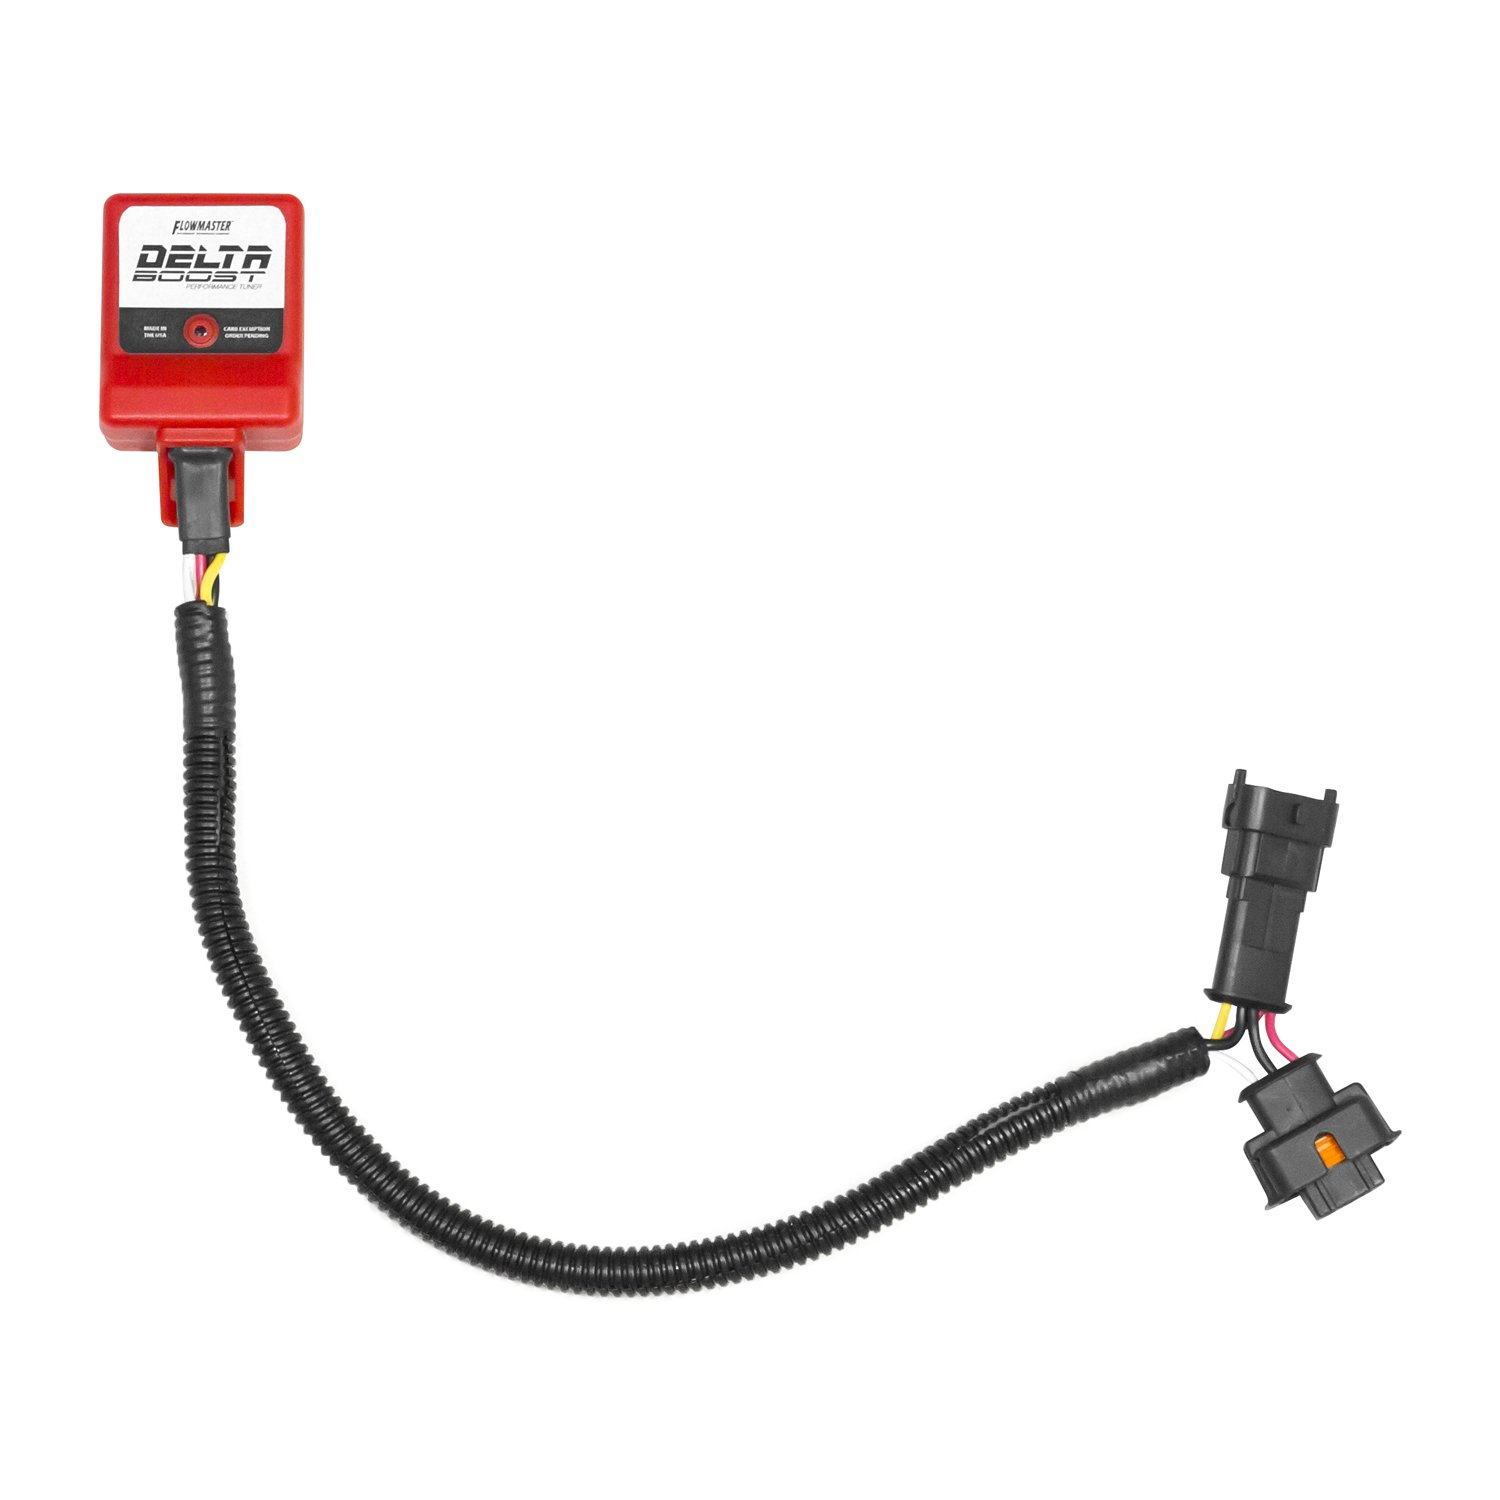 Flowmaster 18101 Delta Boost Control Module 2015-2017 Ford Mustang 2.3L EcoBoost